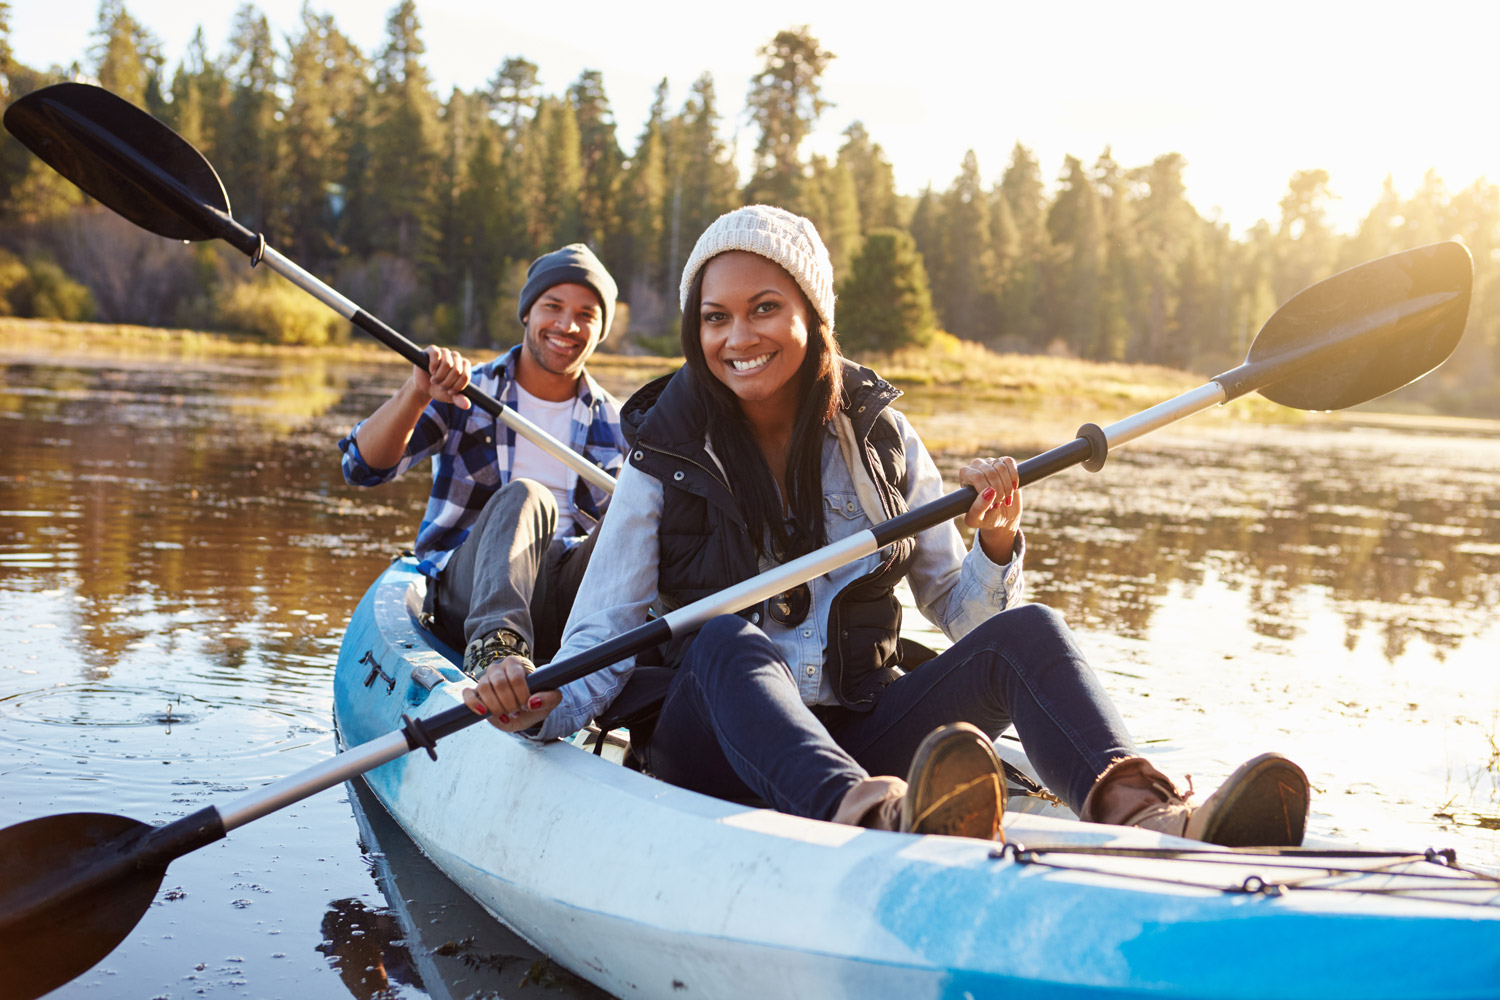 Isn't this the cutest kayaking photo?! Except maybe wear some life vests as needed. (Licensed Adobe stock image)